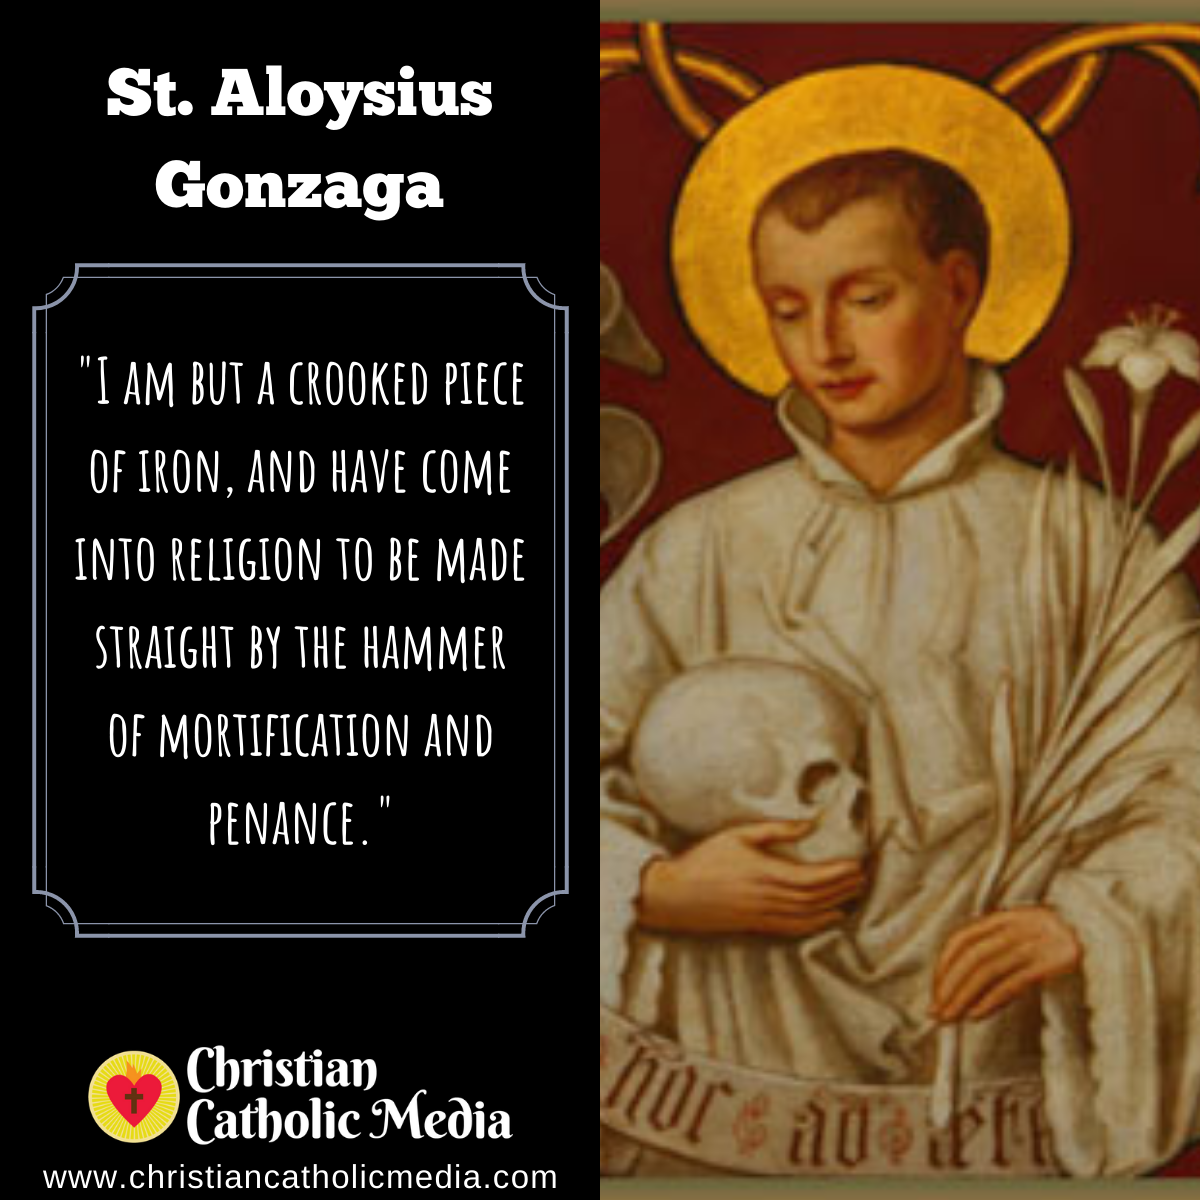 St. Aloysius Gonzaga - Sunday June 21, 2020